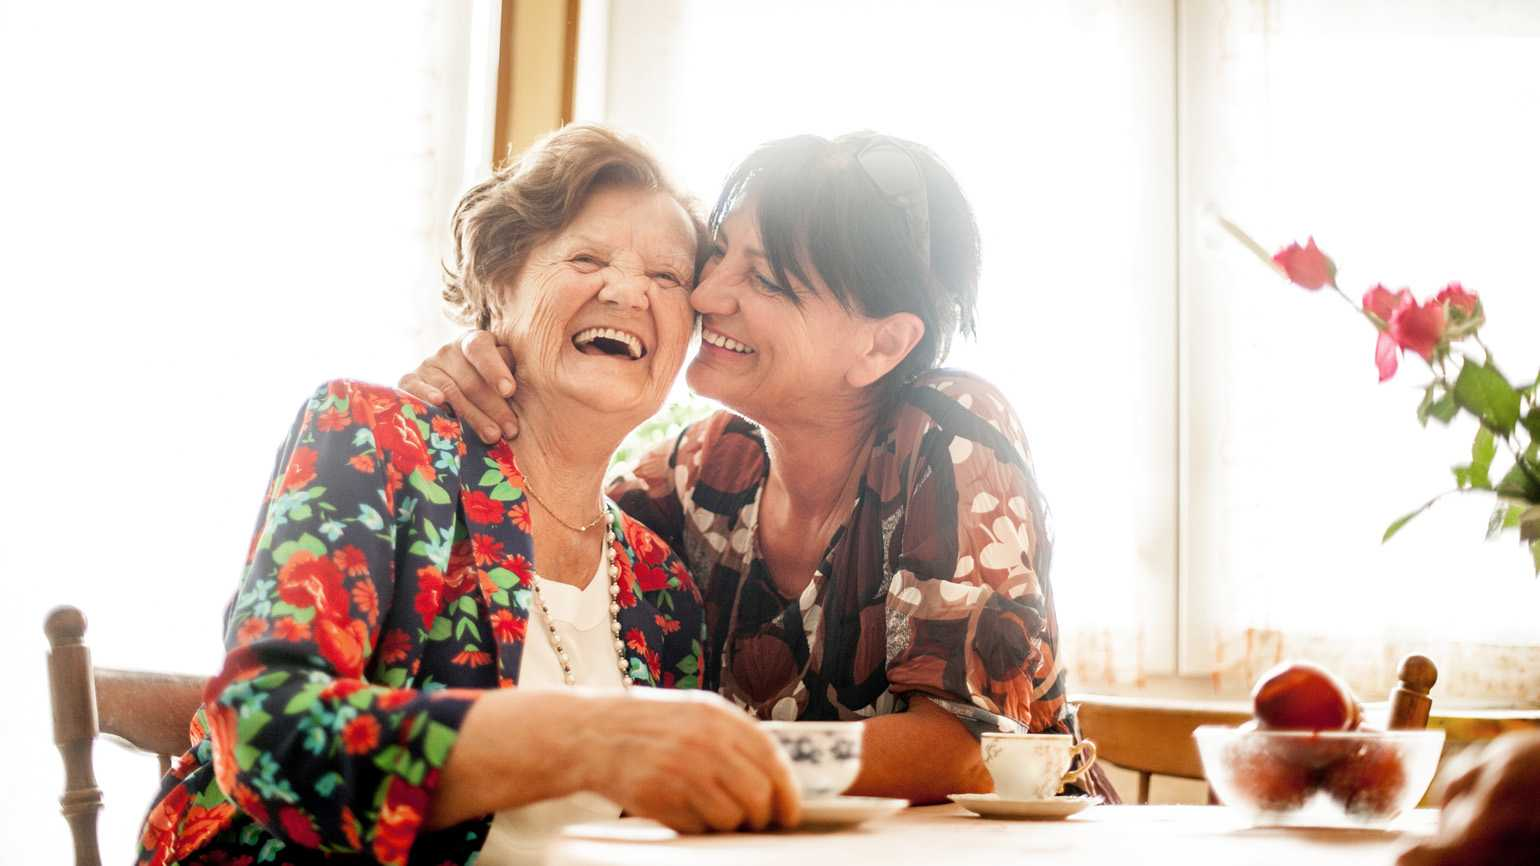 A daughter taking care of her mother while having a laugh.